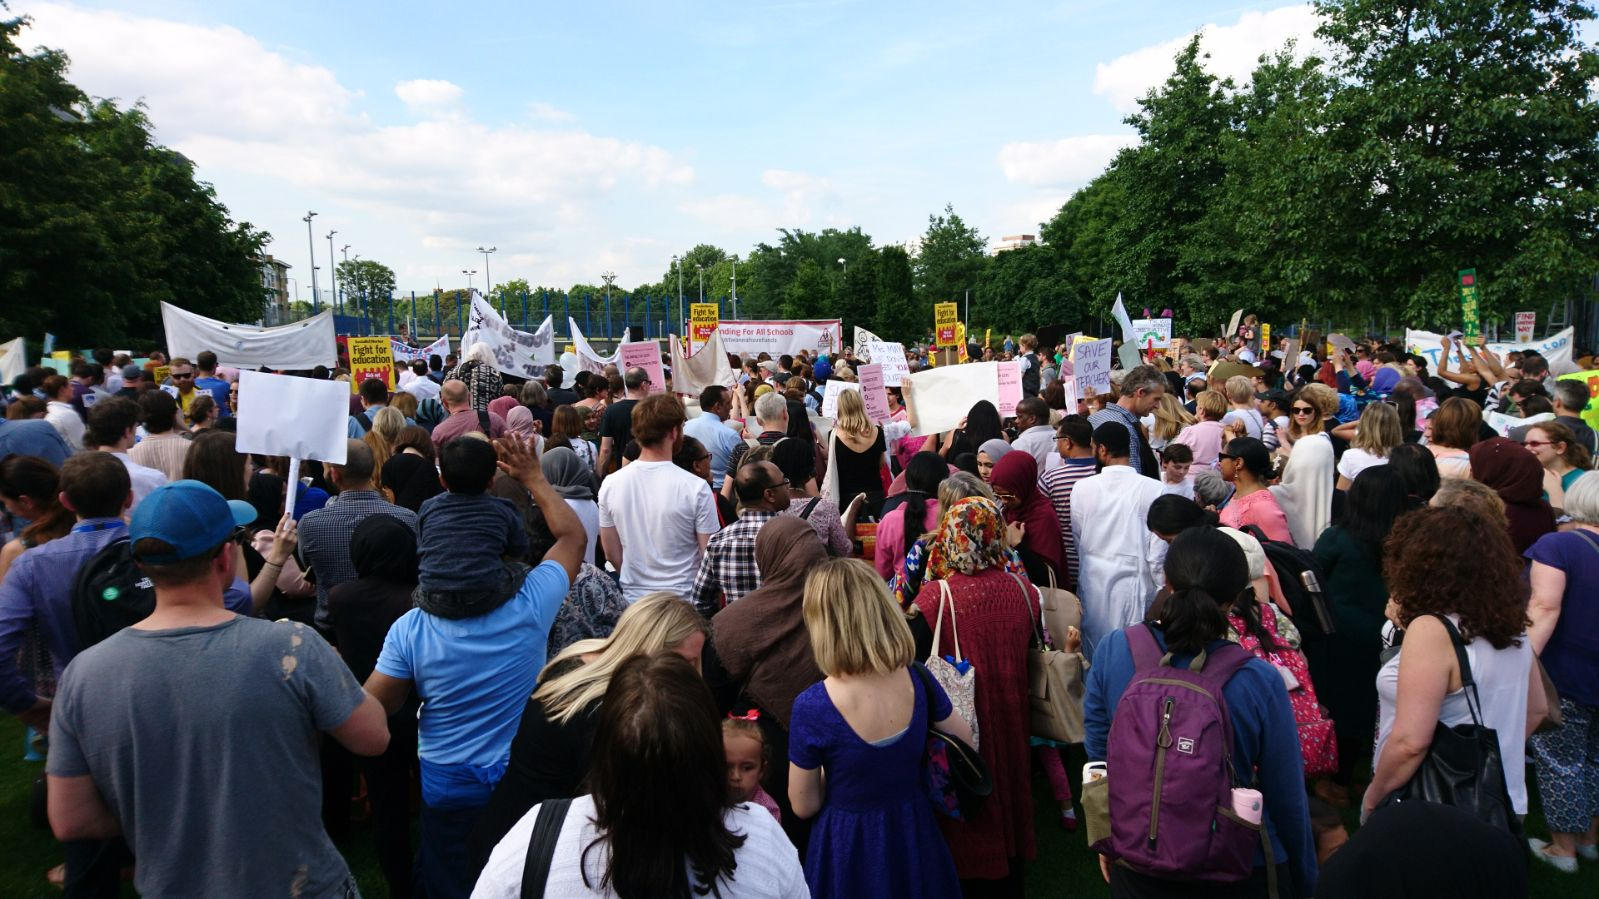 Tower Hamlets rallies against education cuts